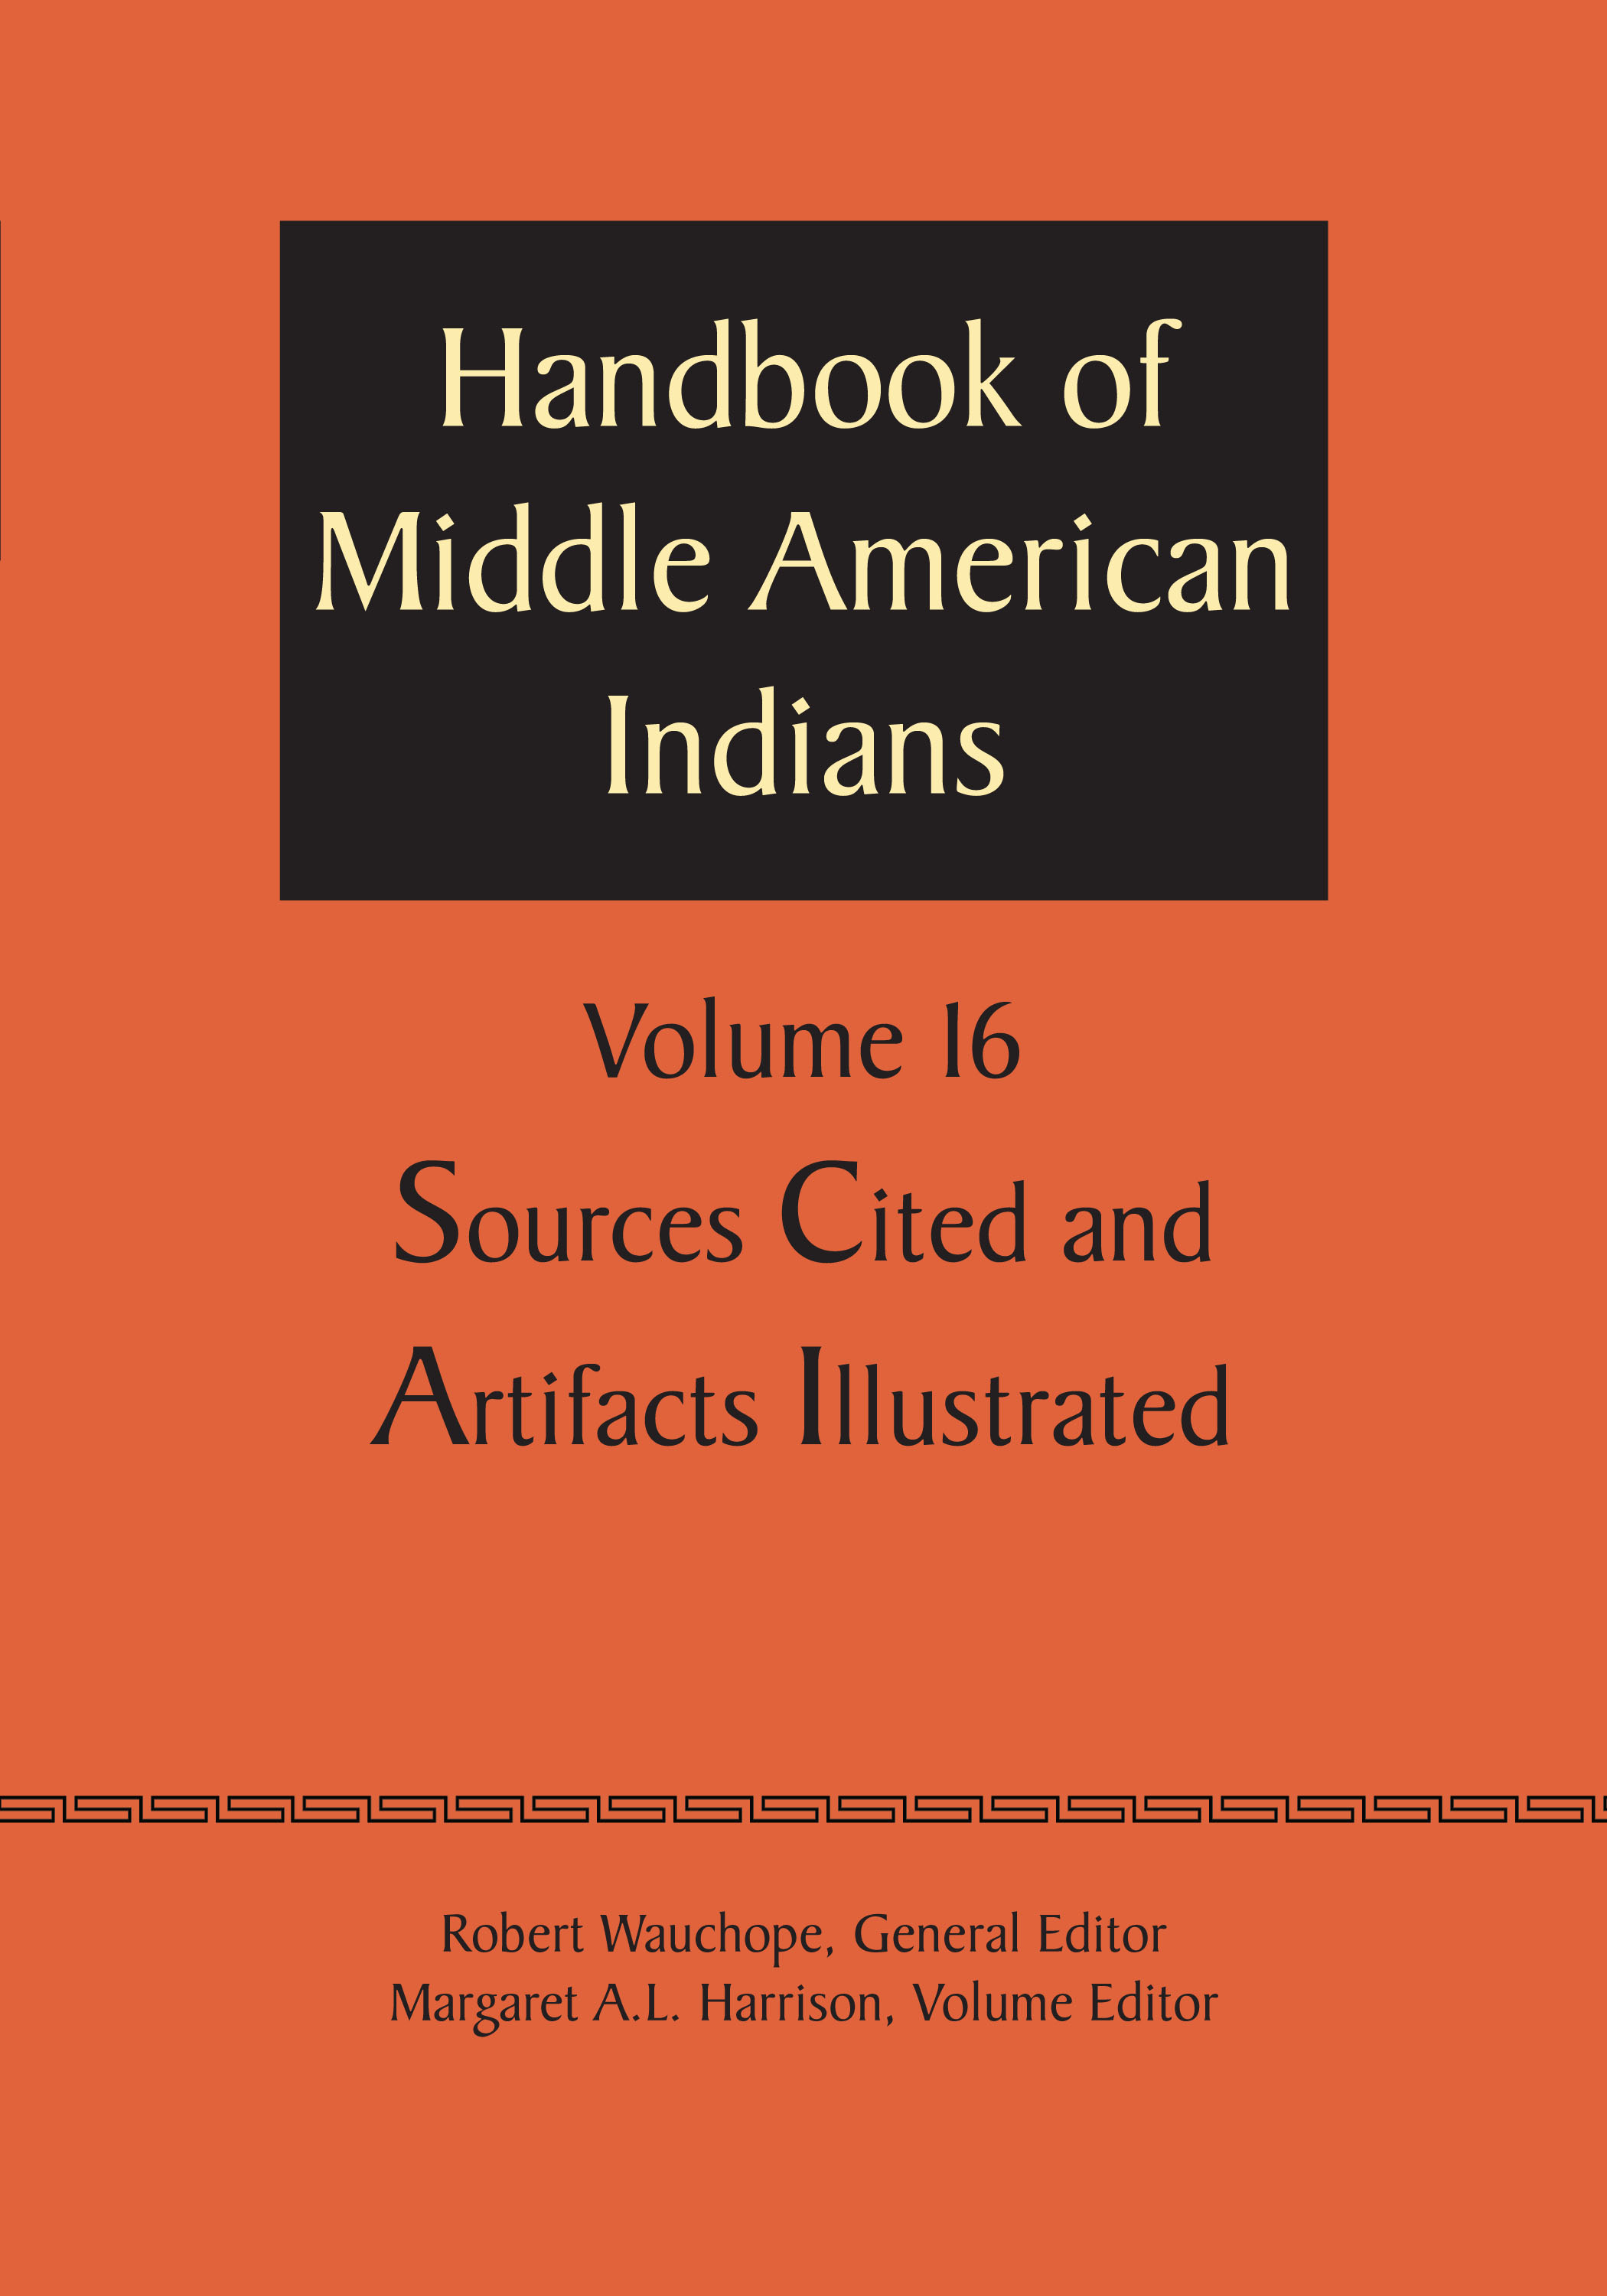 Cover of Handbook of Middle American Indians, Volume 16